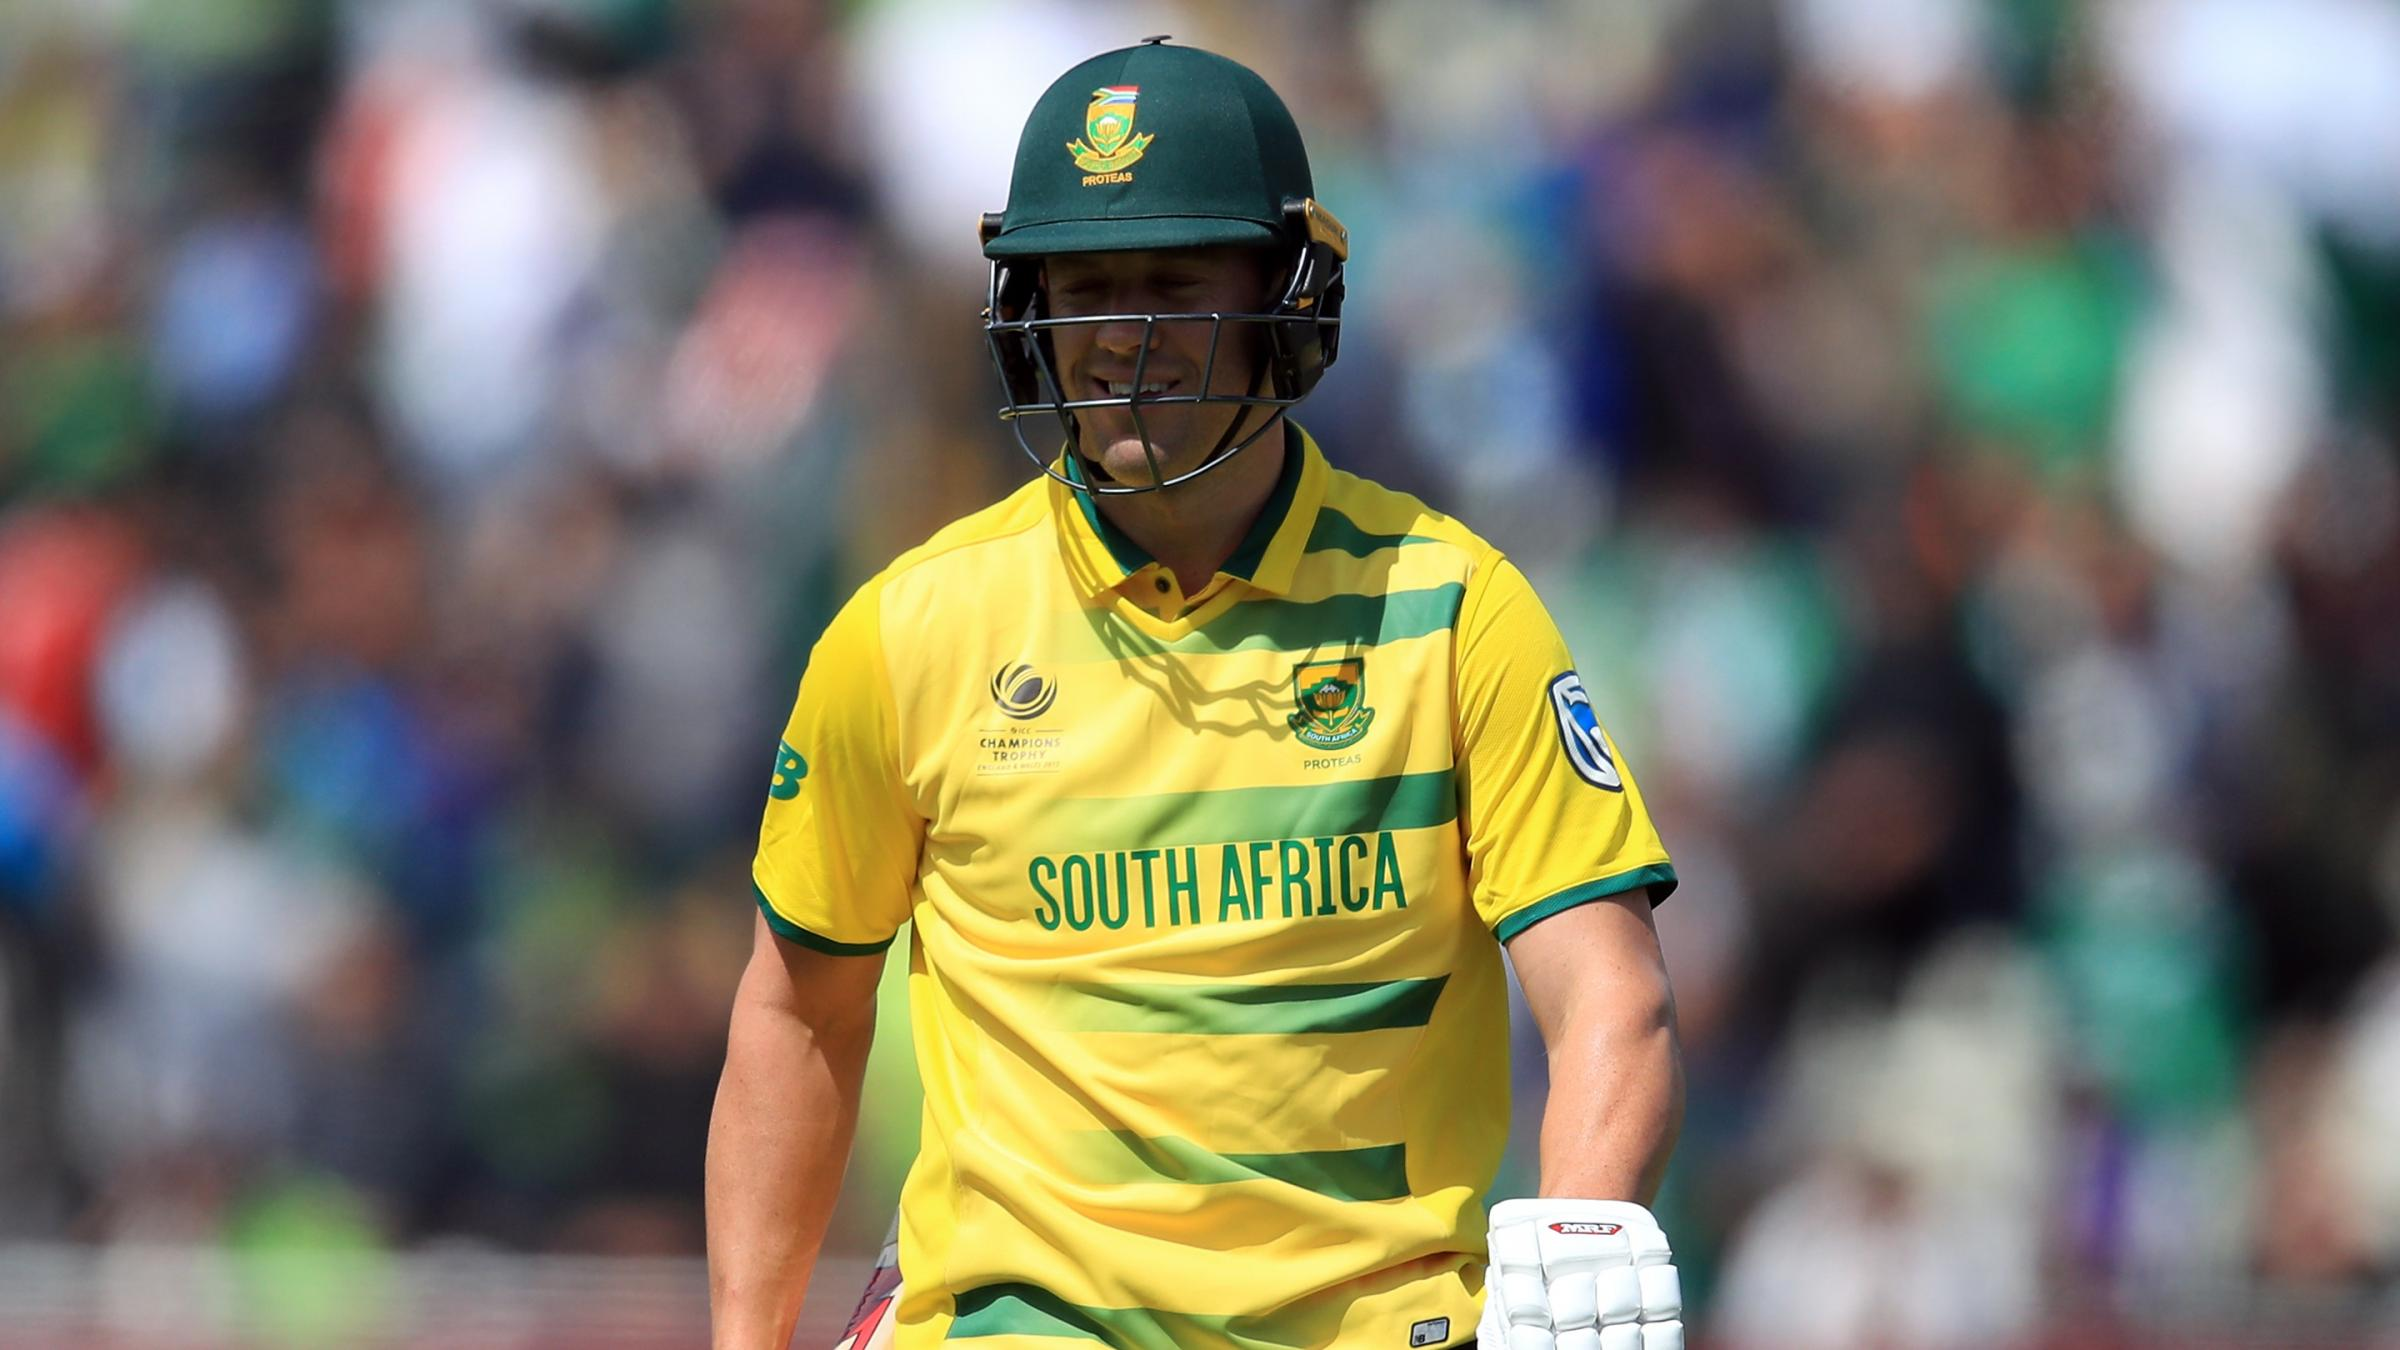 De Villiers to lead Proteas in England T20 series